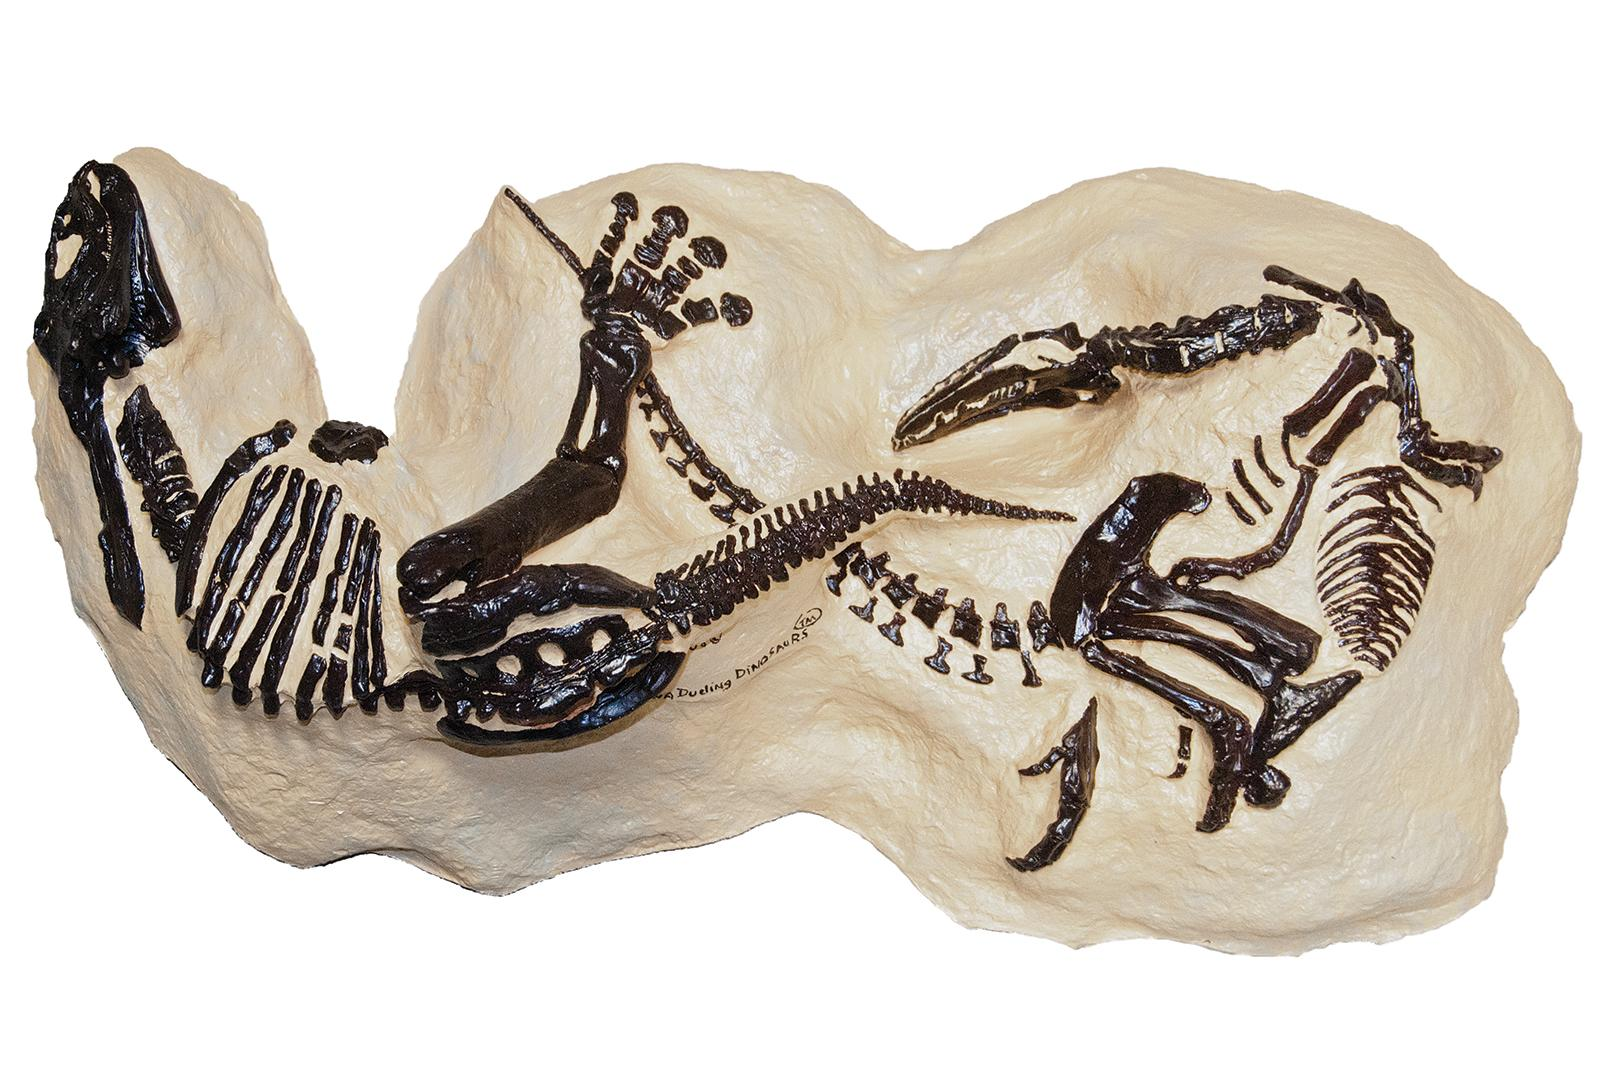 A Fossil Shows Dinosaurs Permanently Locked In A Fight